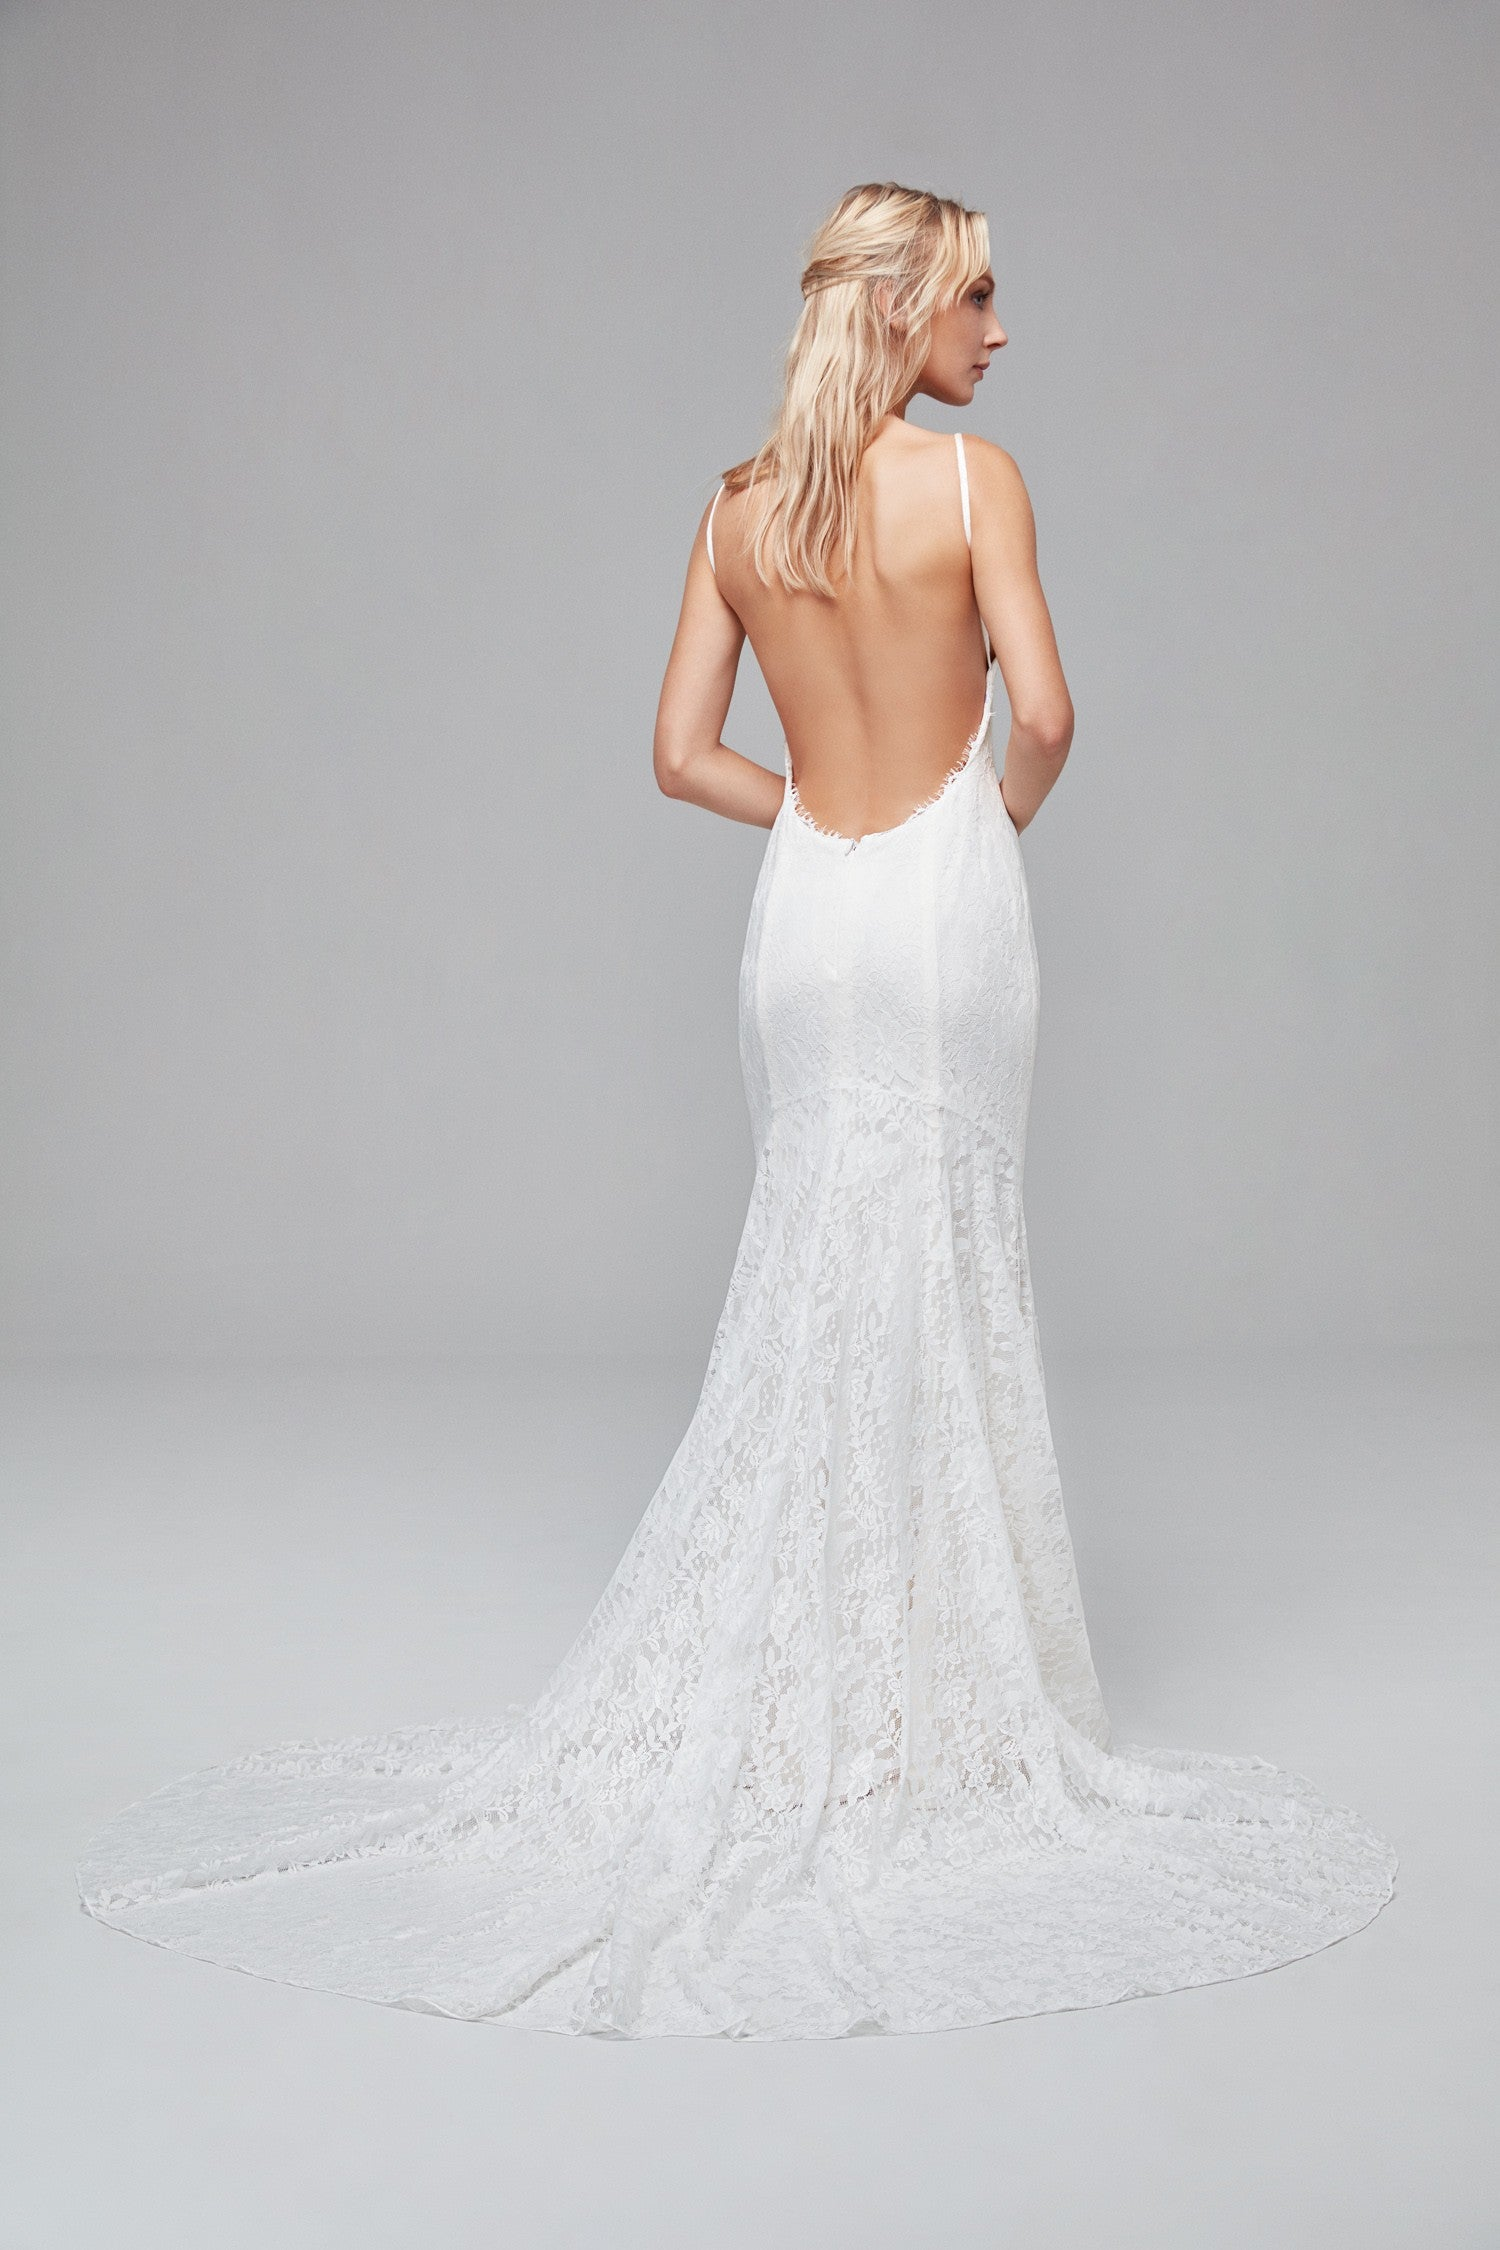 Soft Lace Wedding Dress with Low Back-WG3827